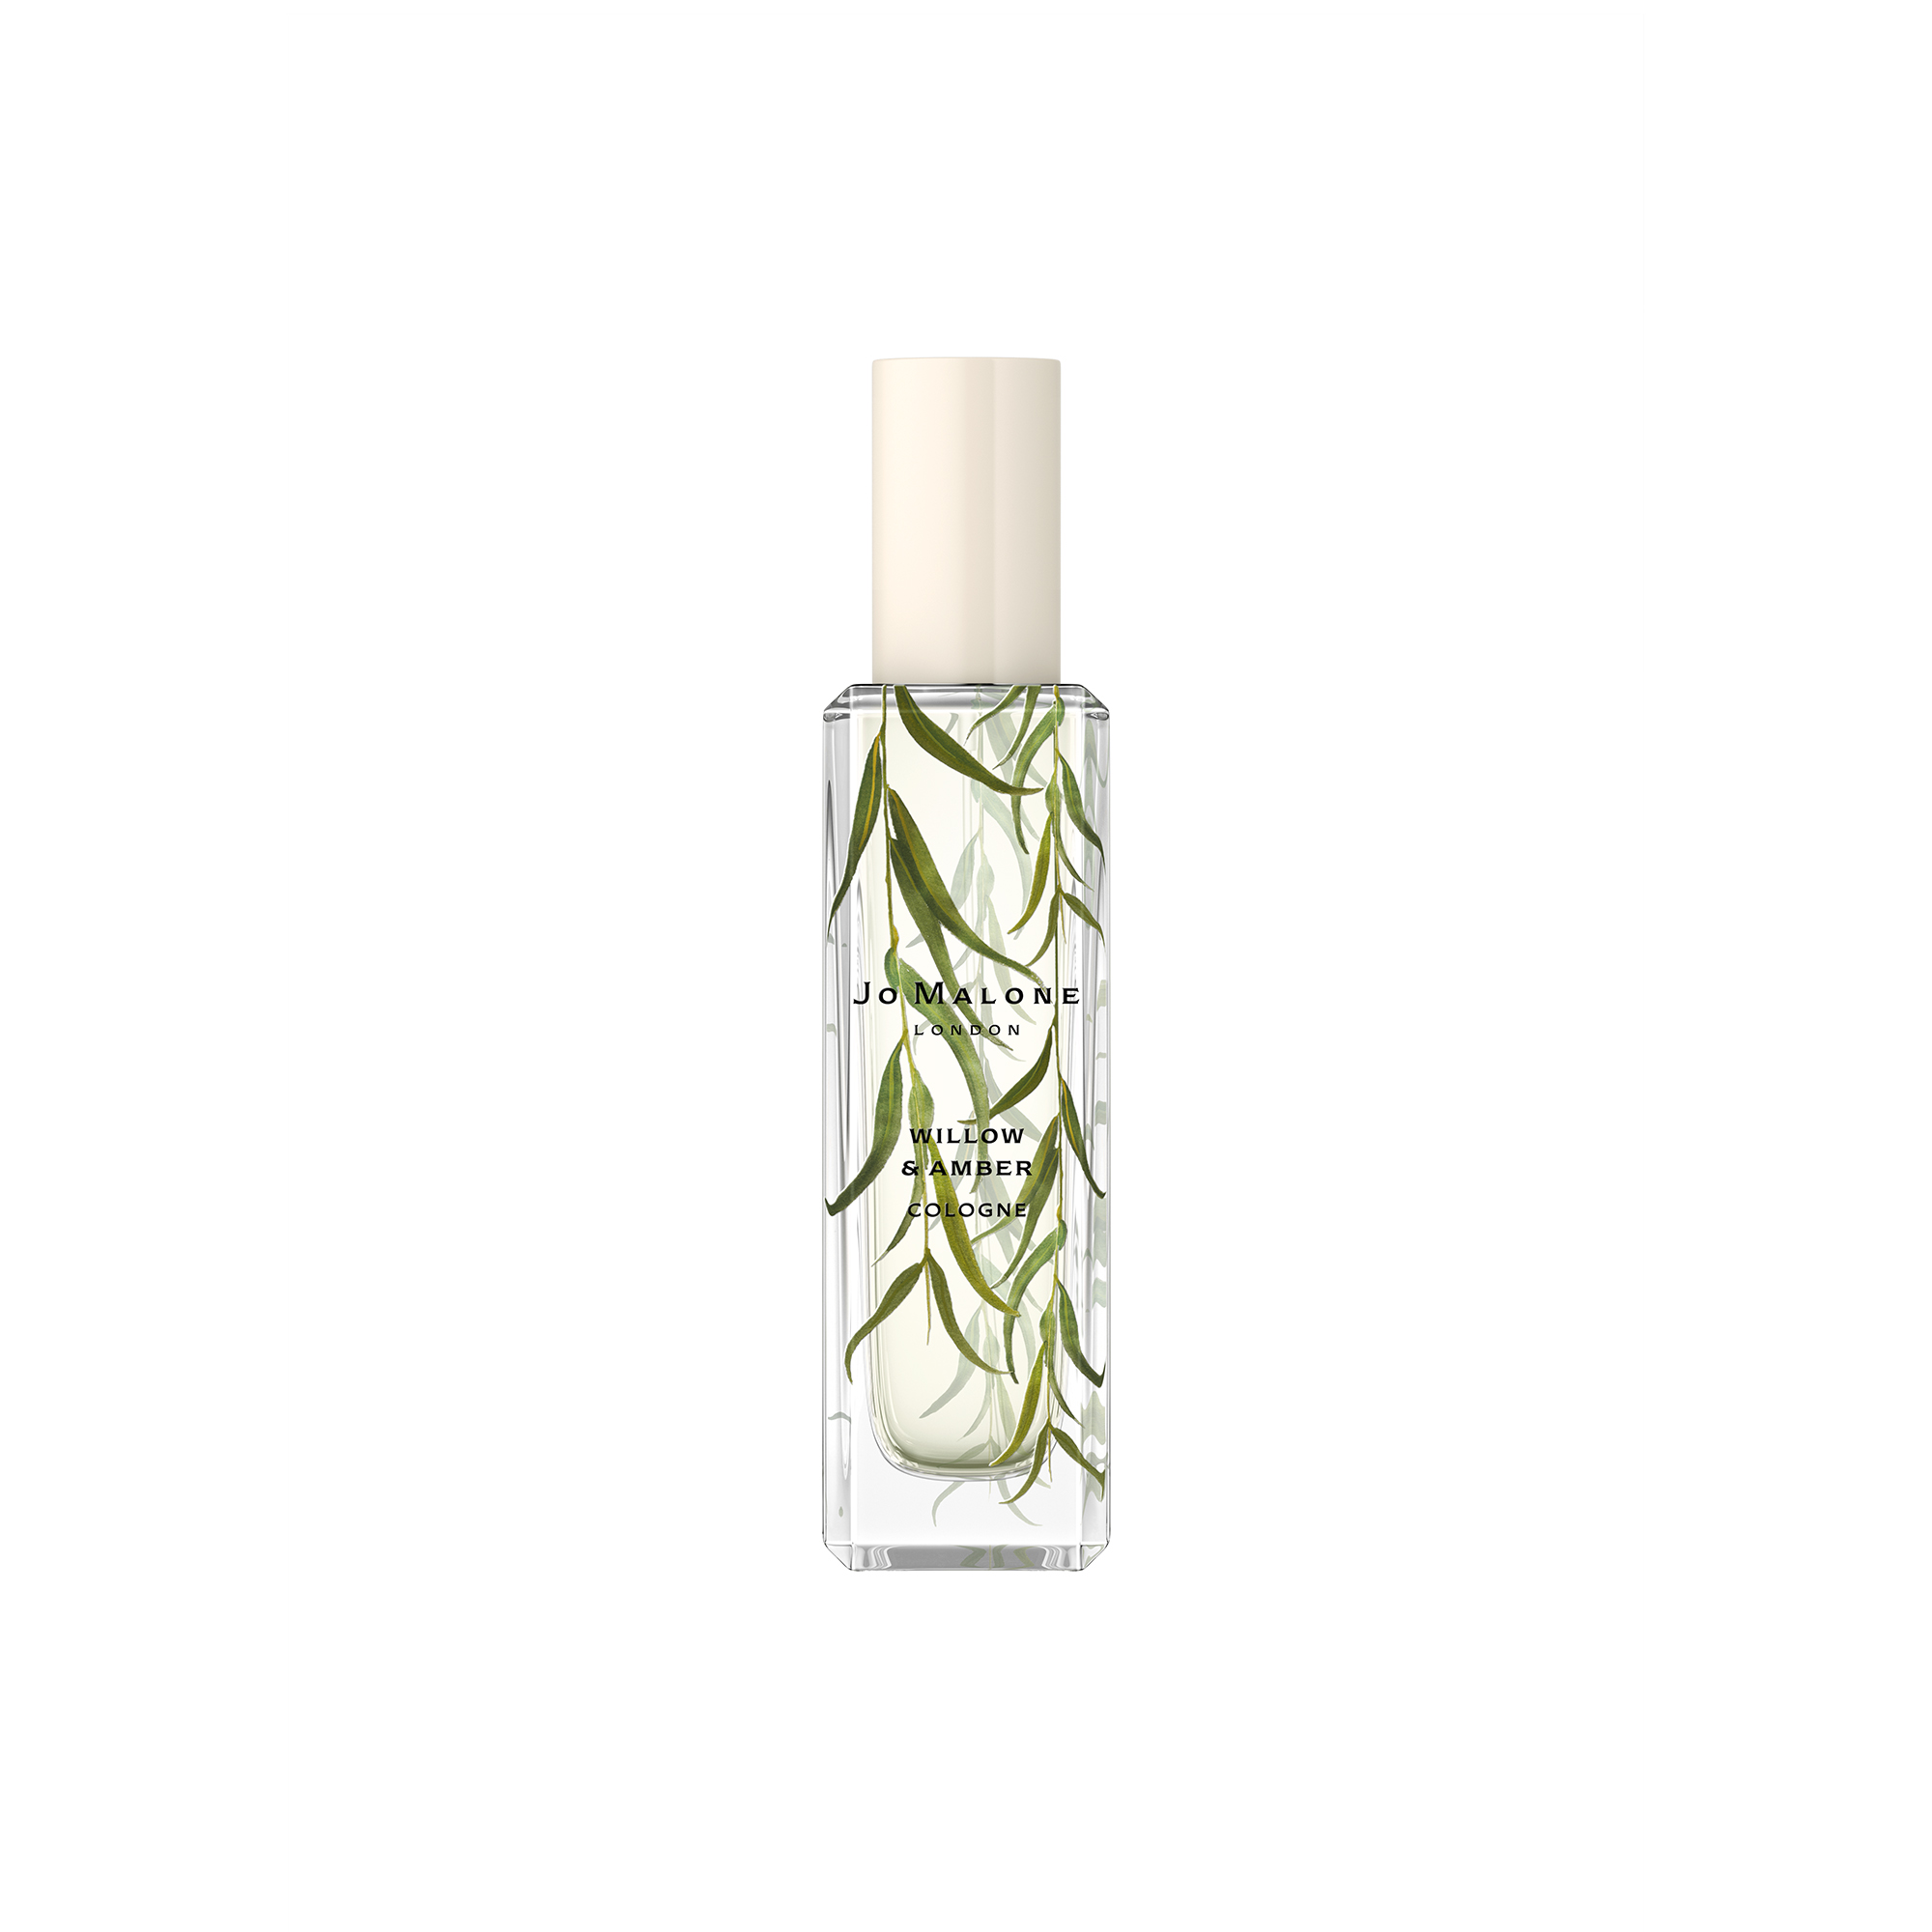 Willow & Amber Cologne Edt 30 ml